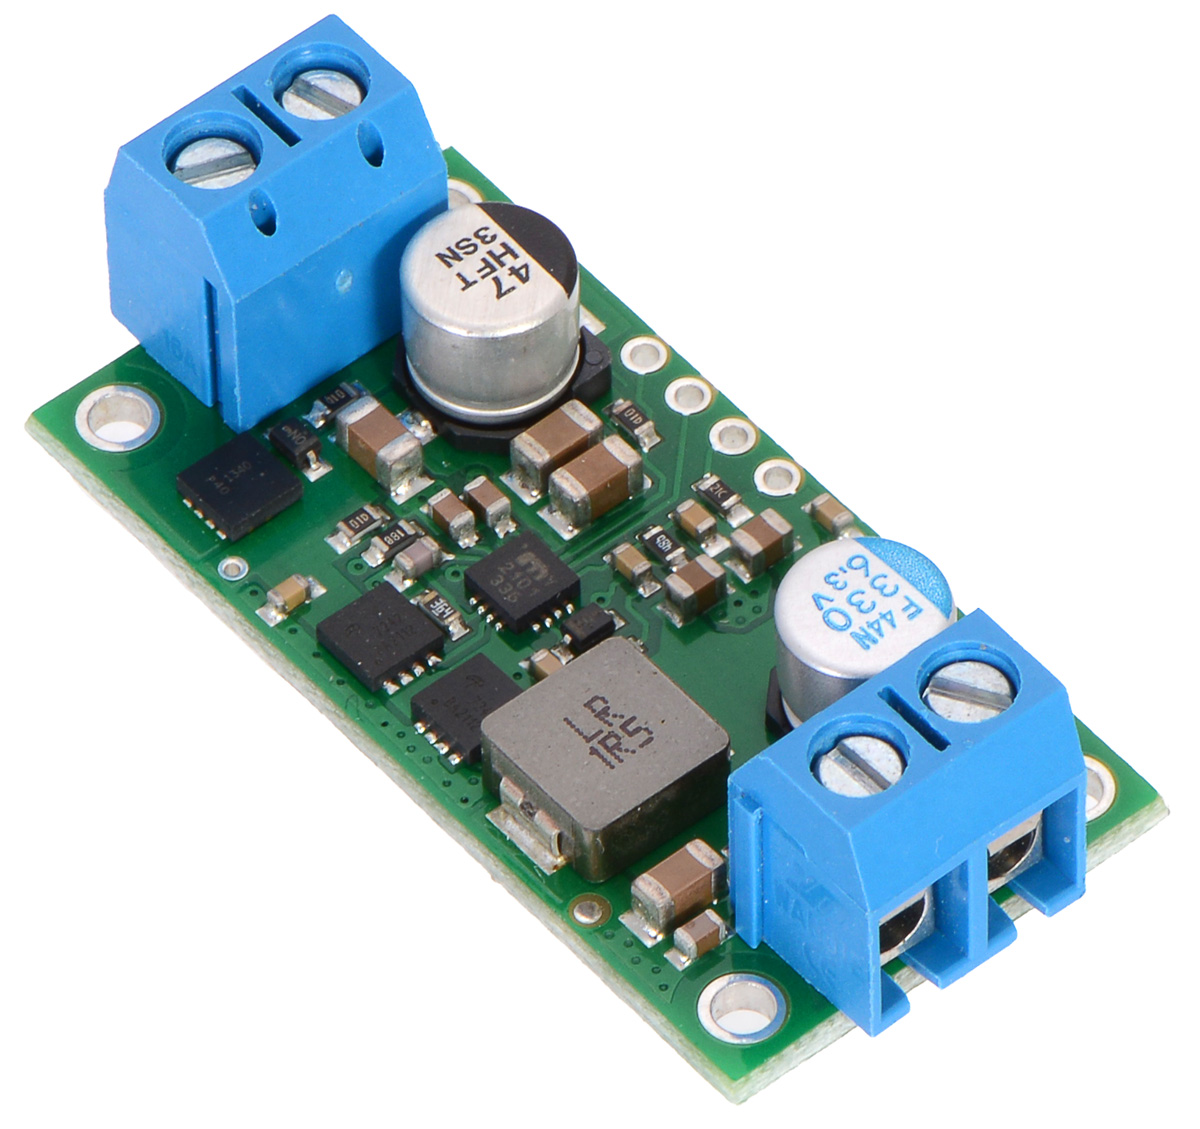 Pololu 5v 9a Step Down Voltage Regulator D24v90f5 Dc To Up Circuit Assembled With Included Terminal Blocks